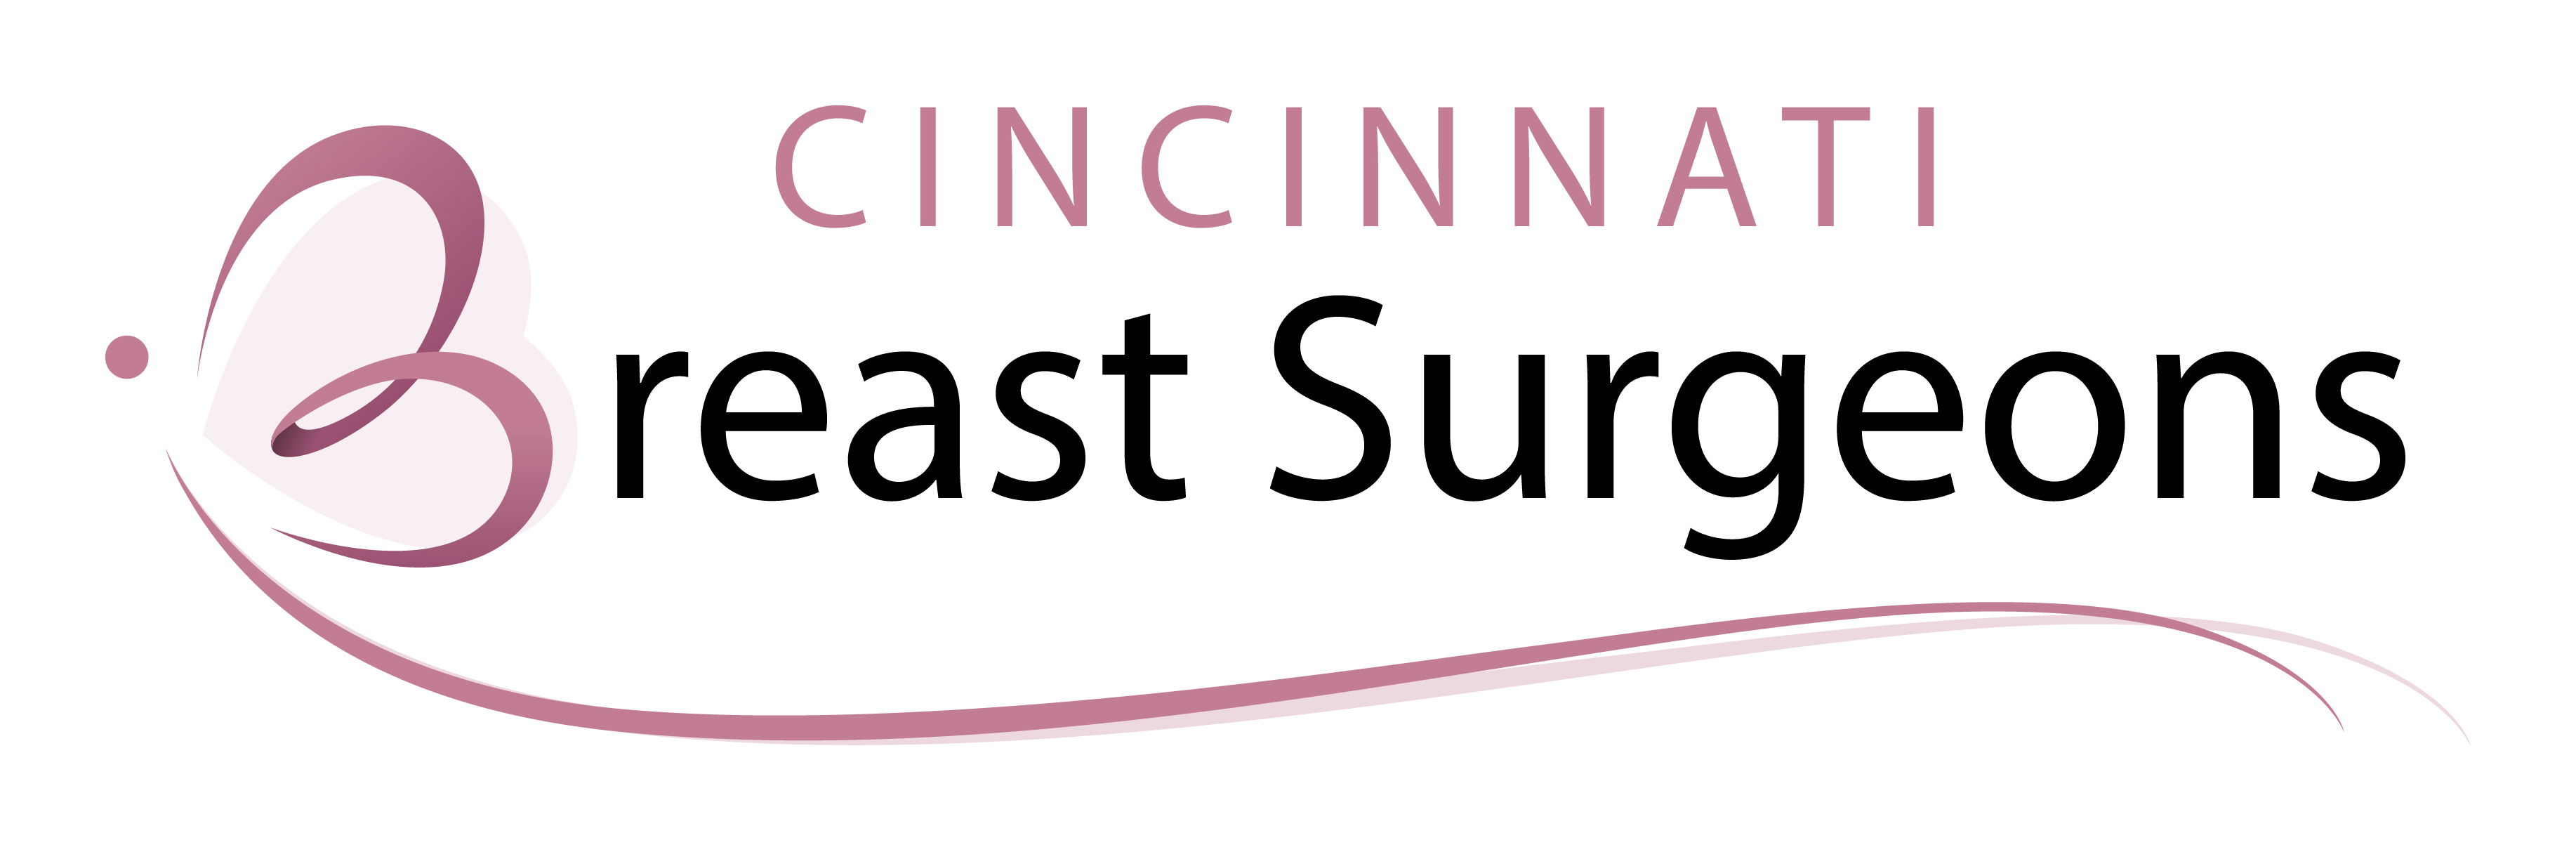 Cincinnati Breast Surgeons